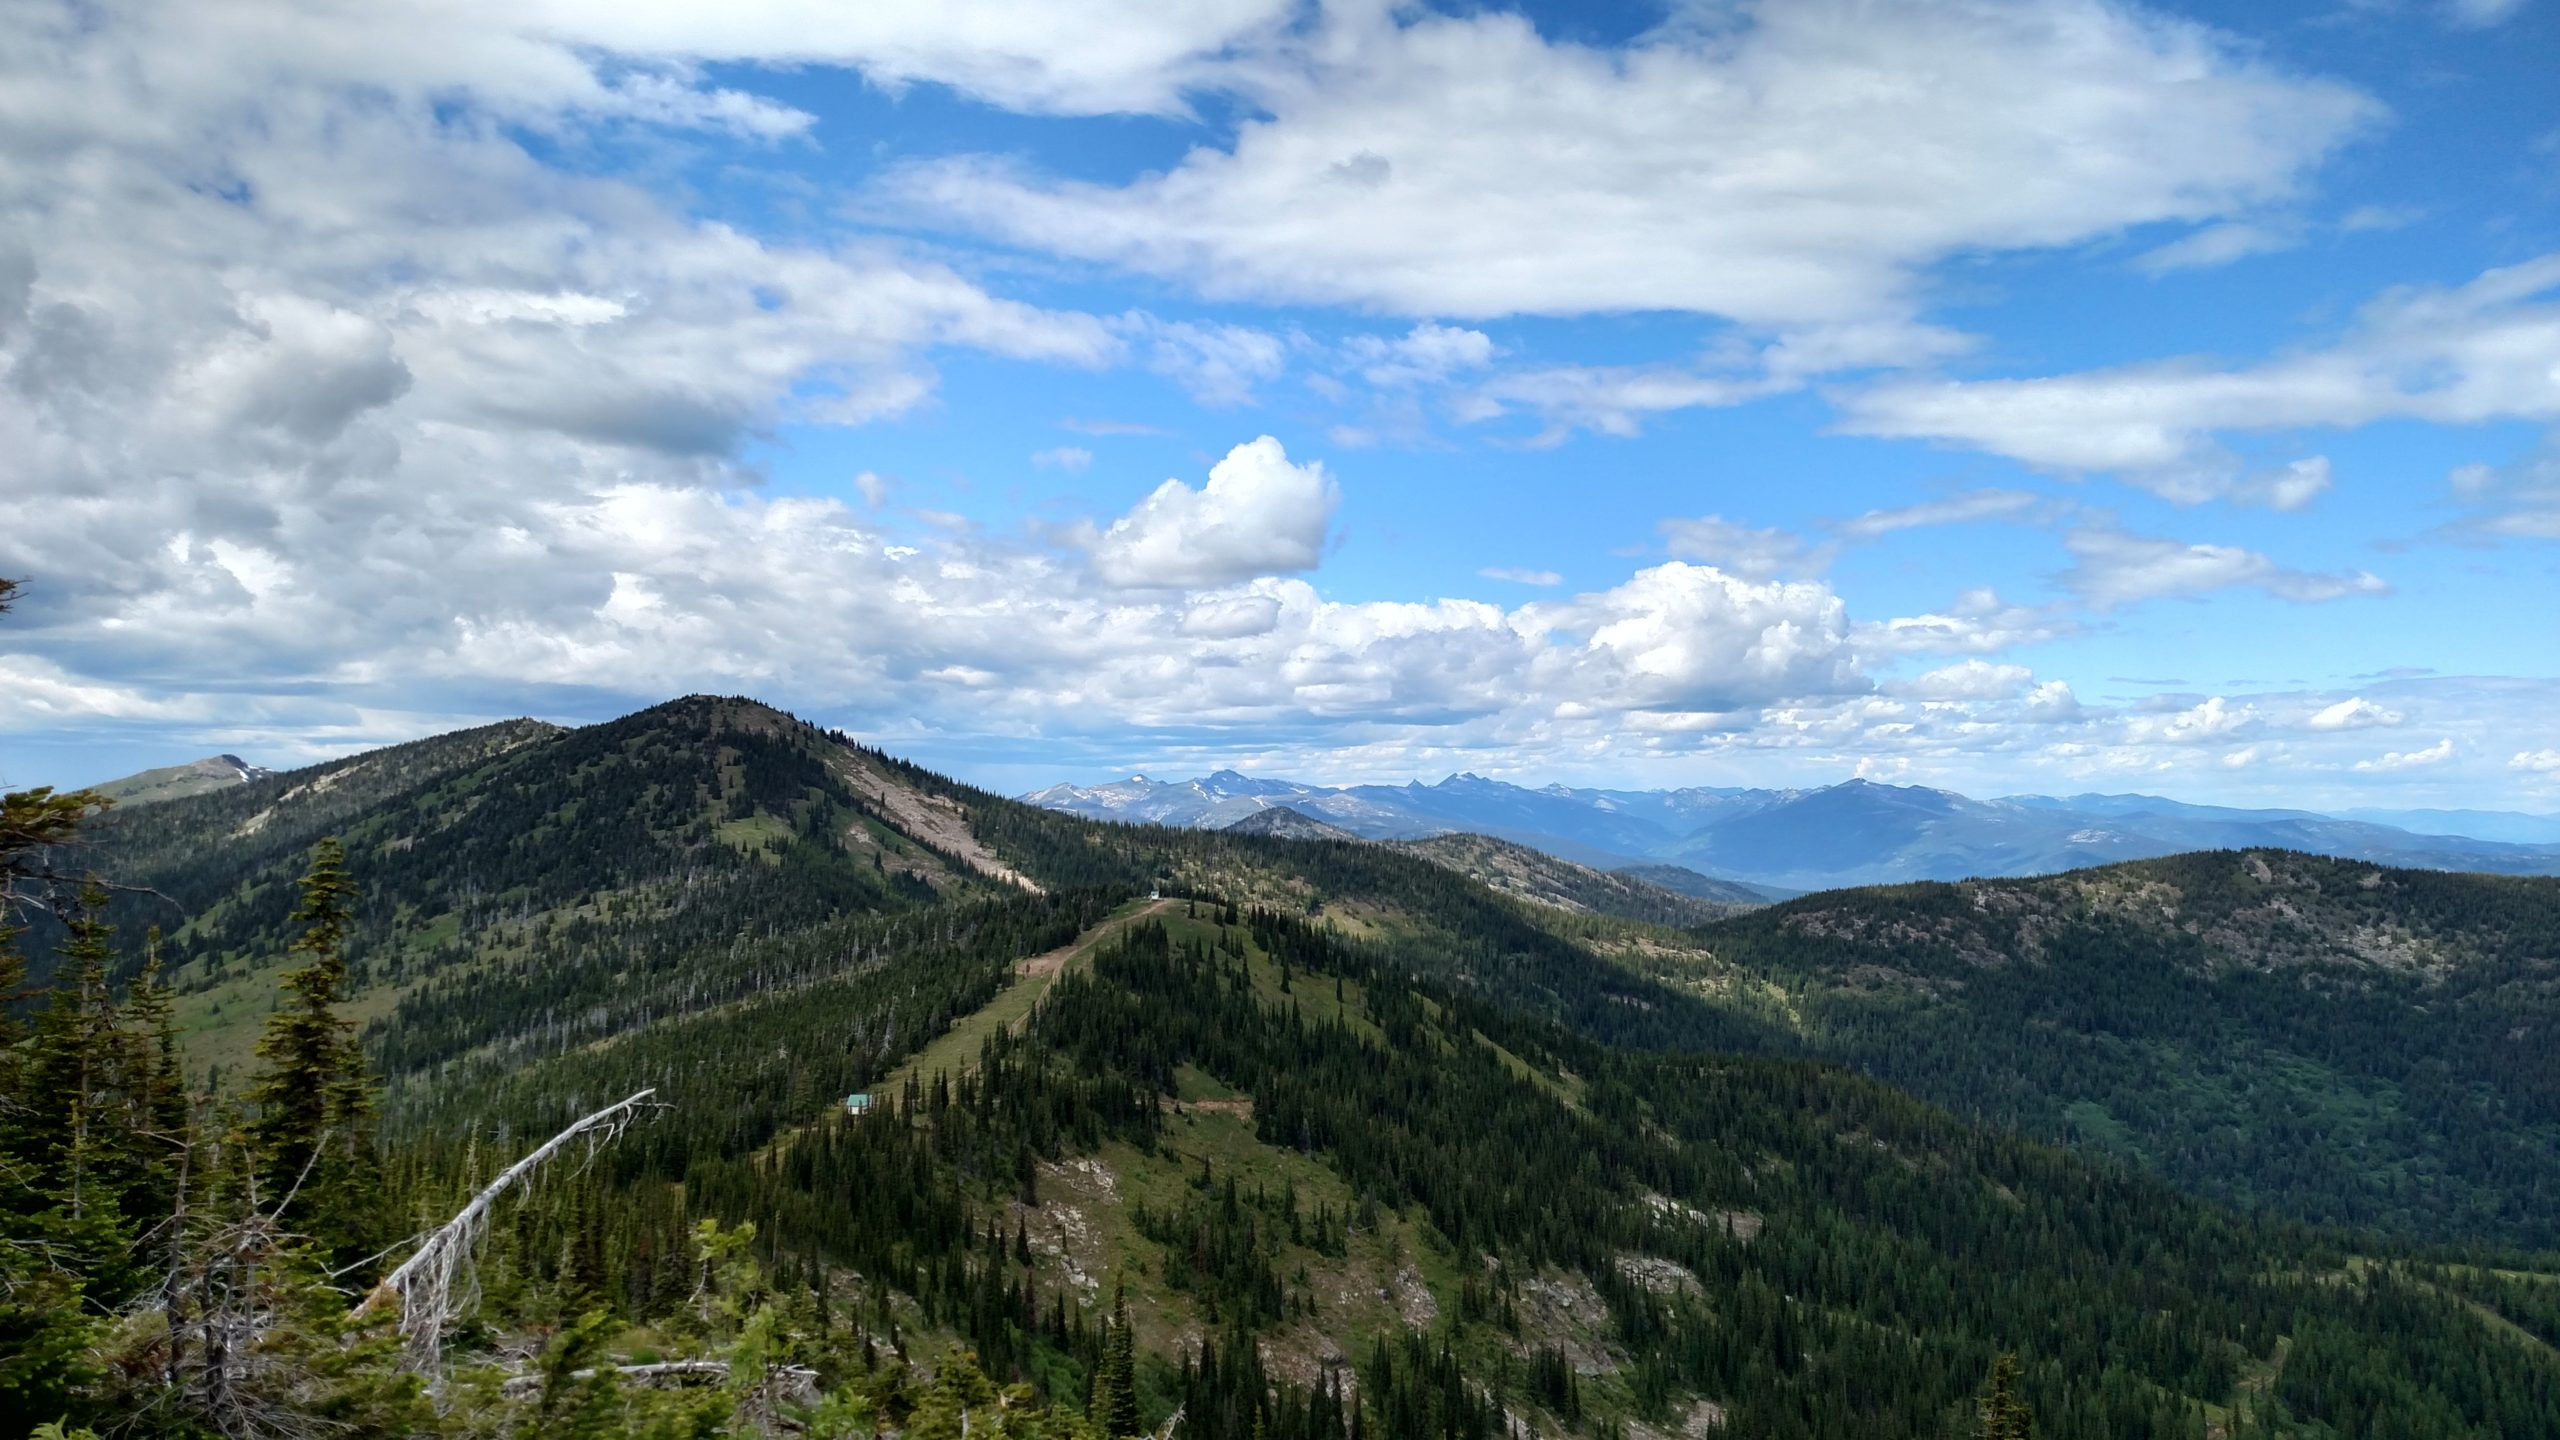 view from Schweitzer Mountain in Idaho